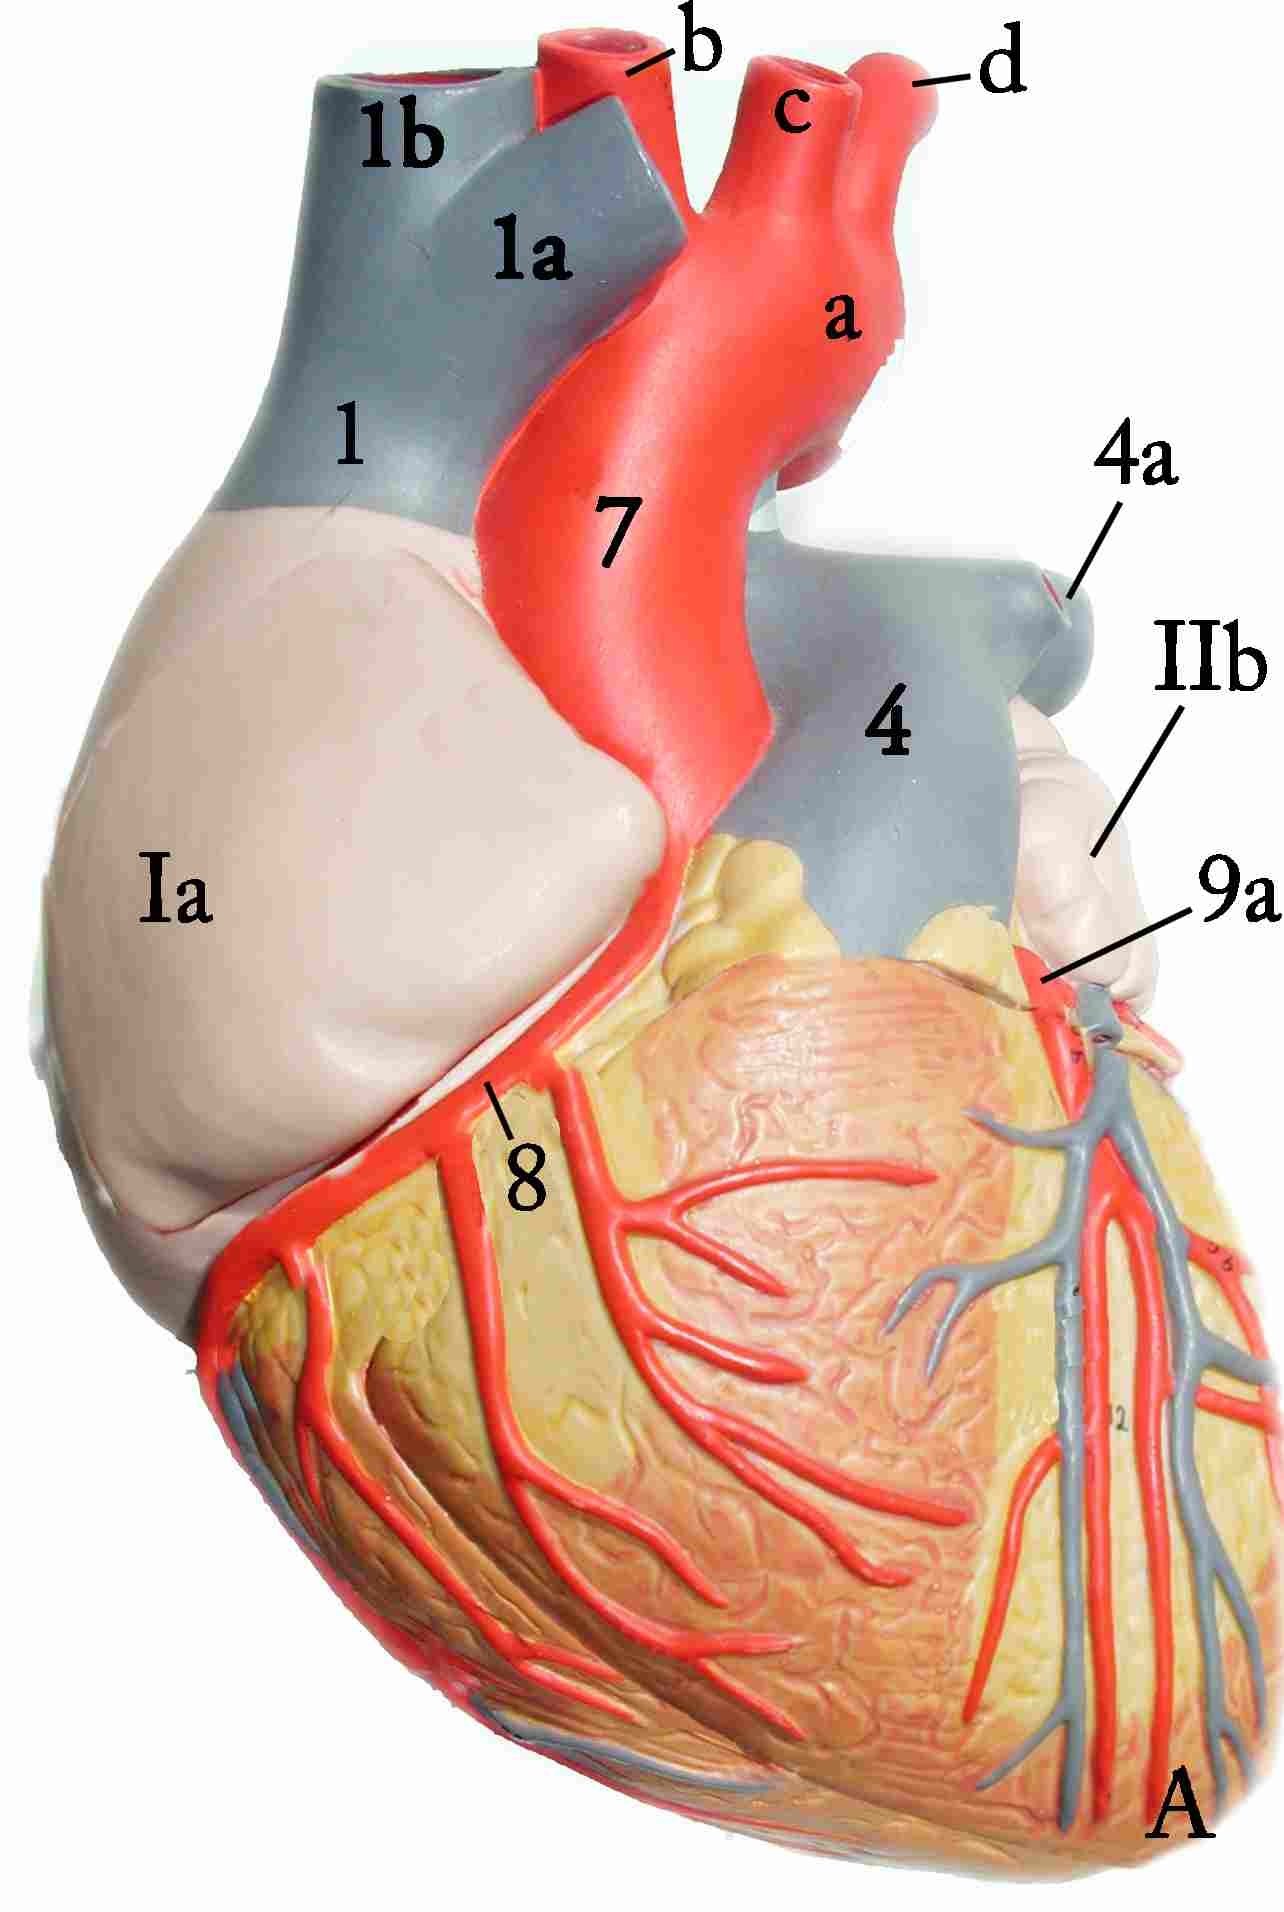 Heart Model Anterior View Click To Toggle Between Superficial And